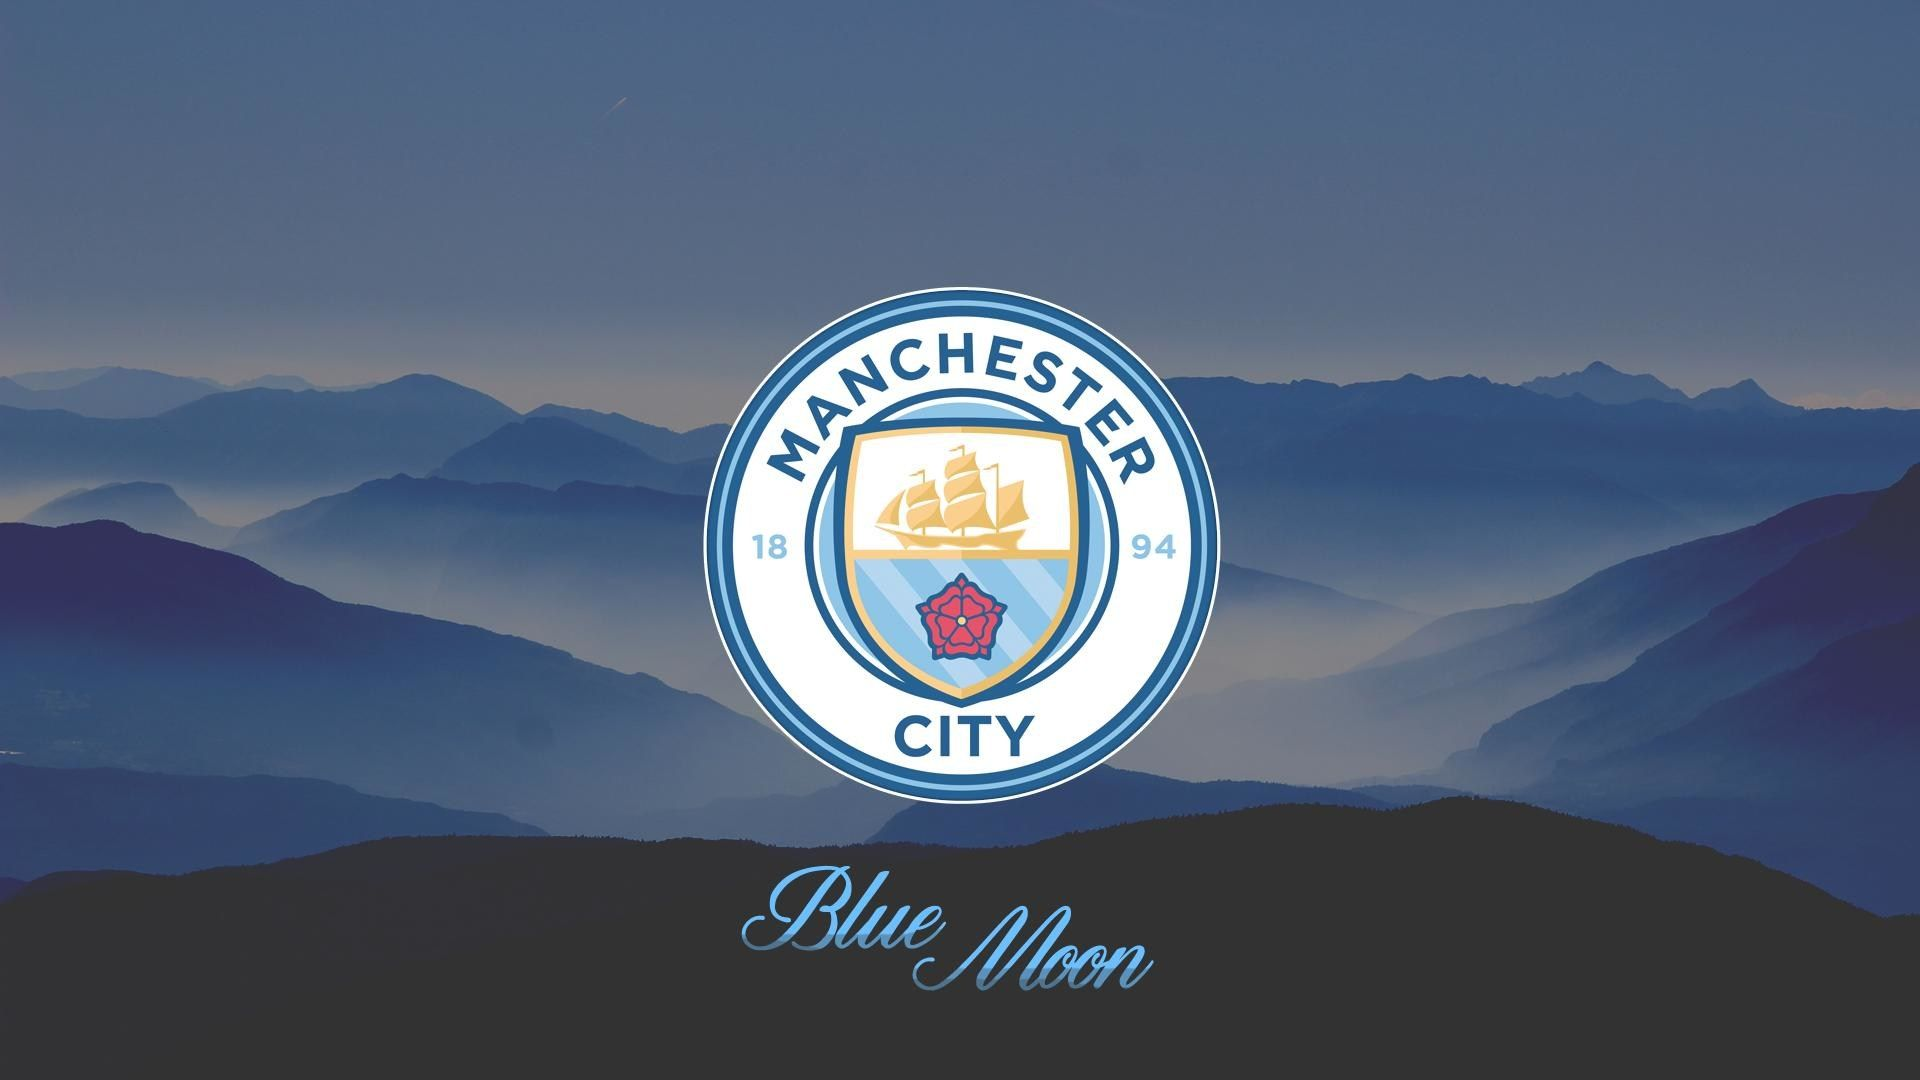 18 Manchester City Wallpapers - WallpaperBoat